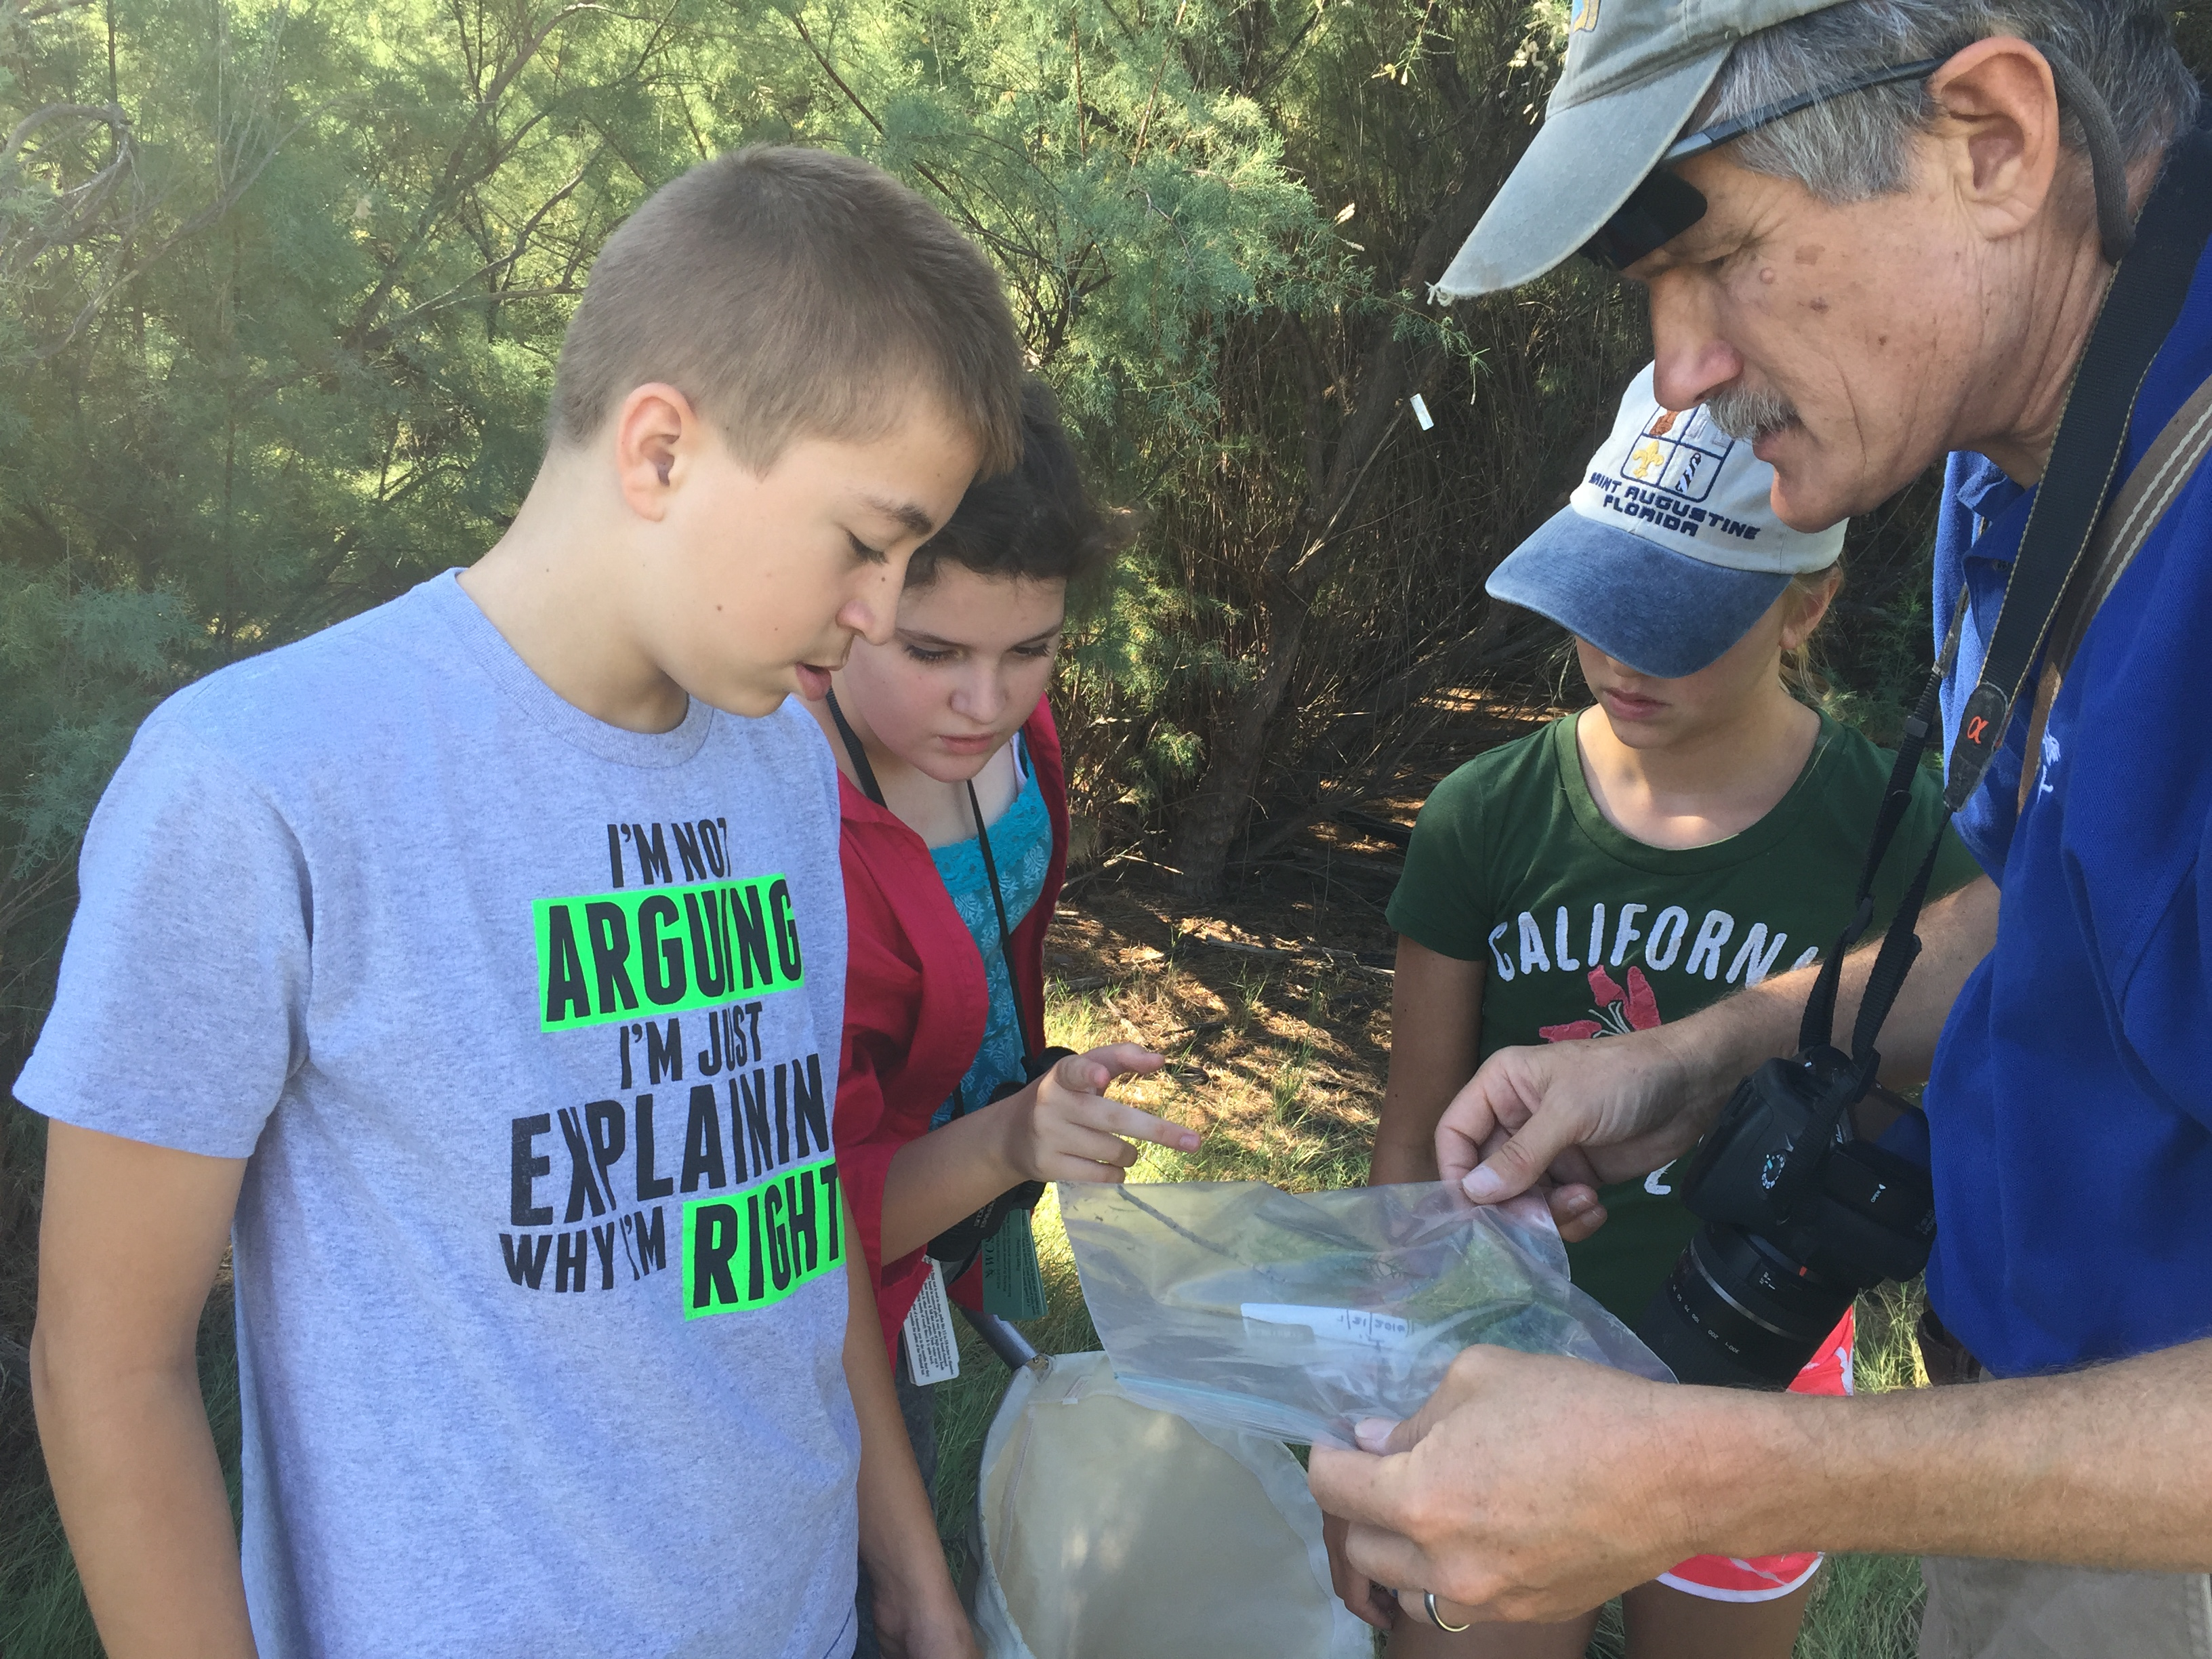 Examining outdoor discoveries